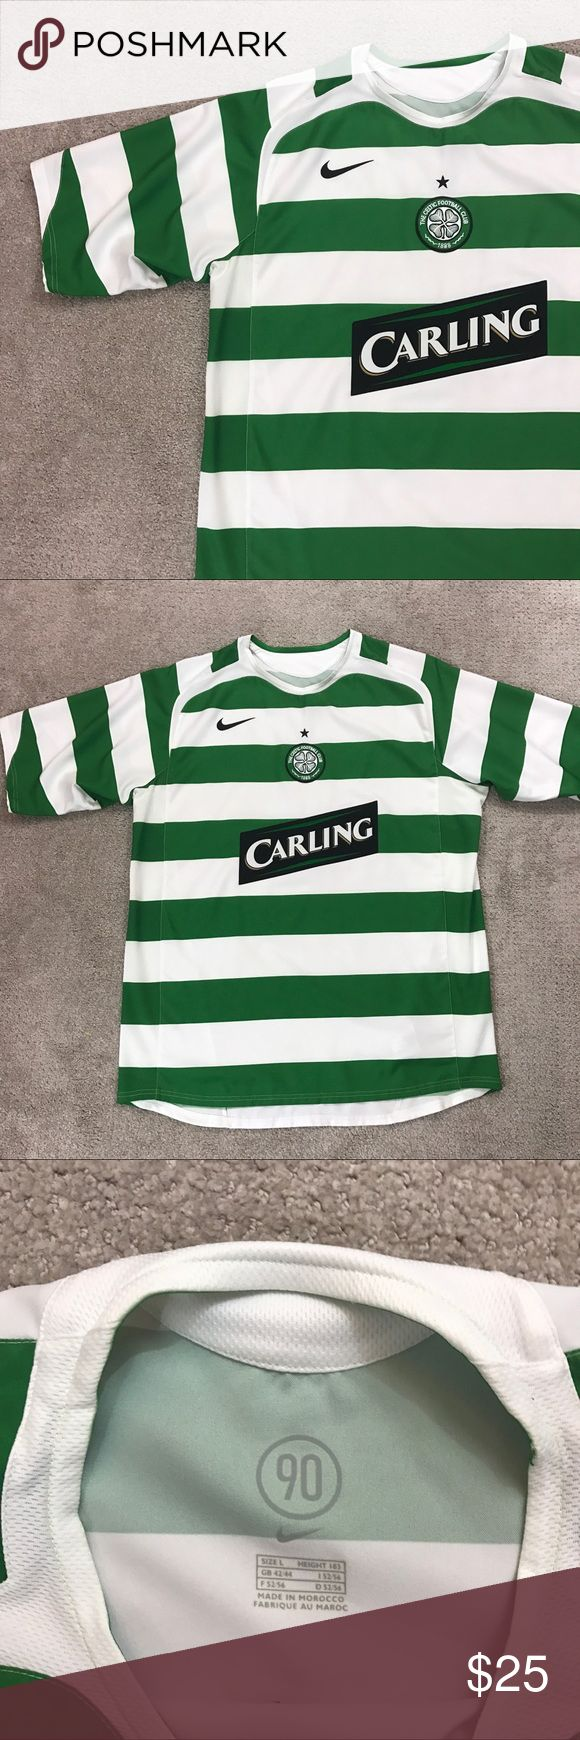 Celtic Soccer Jersey Awesome Nike Celtic soccer jersey size large! Great condition! Some wear in the area where the security tag was attached as shown! Nike Shirts